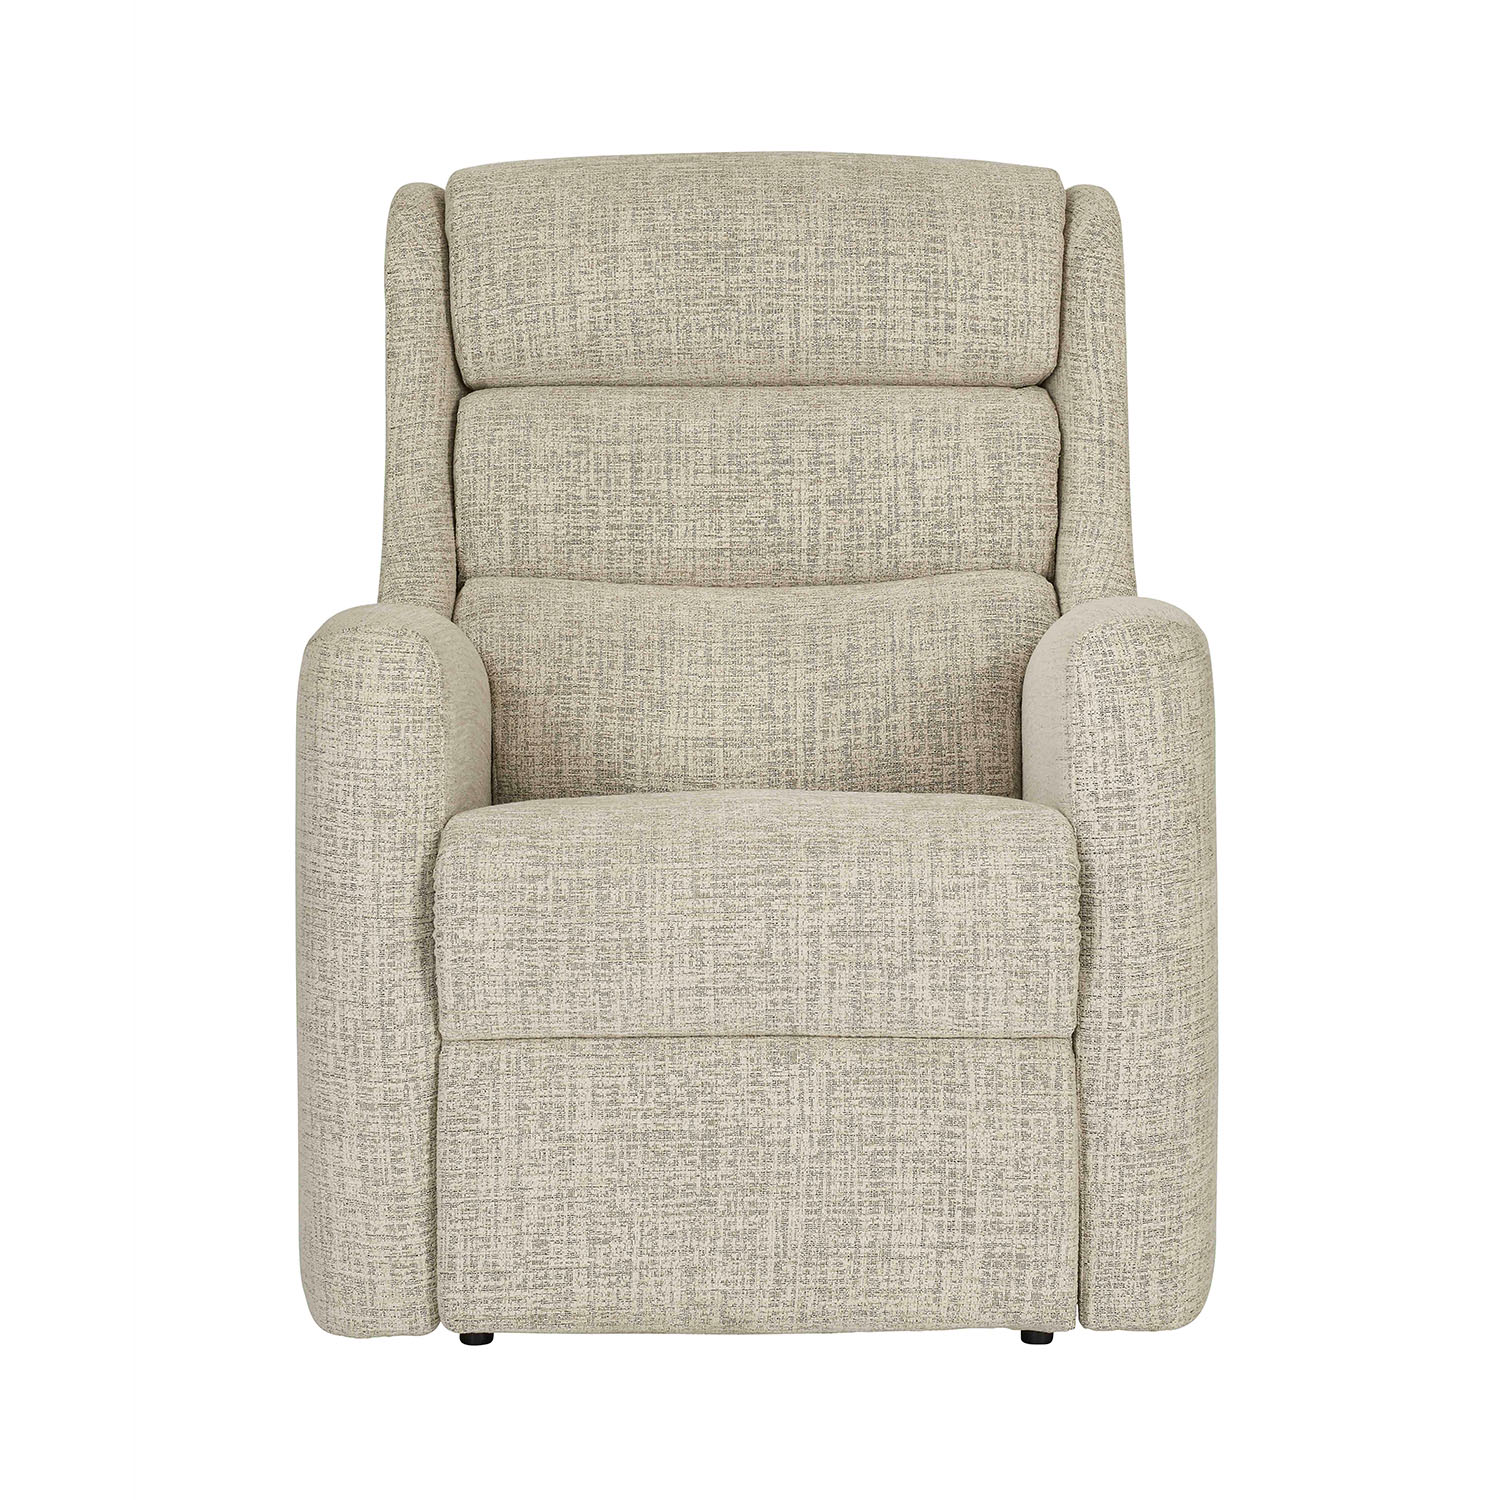 Image of Celebrity Somersby Grande Manual Recliner Fabric Chair